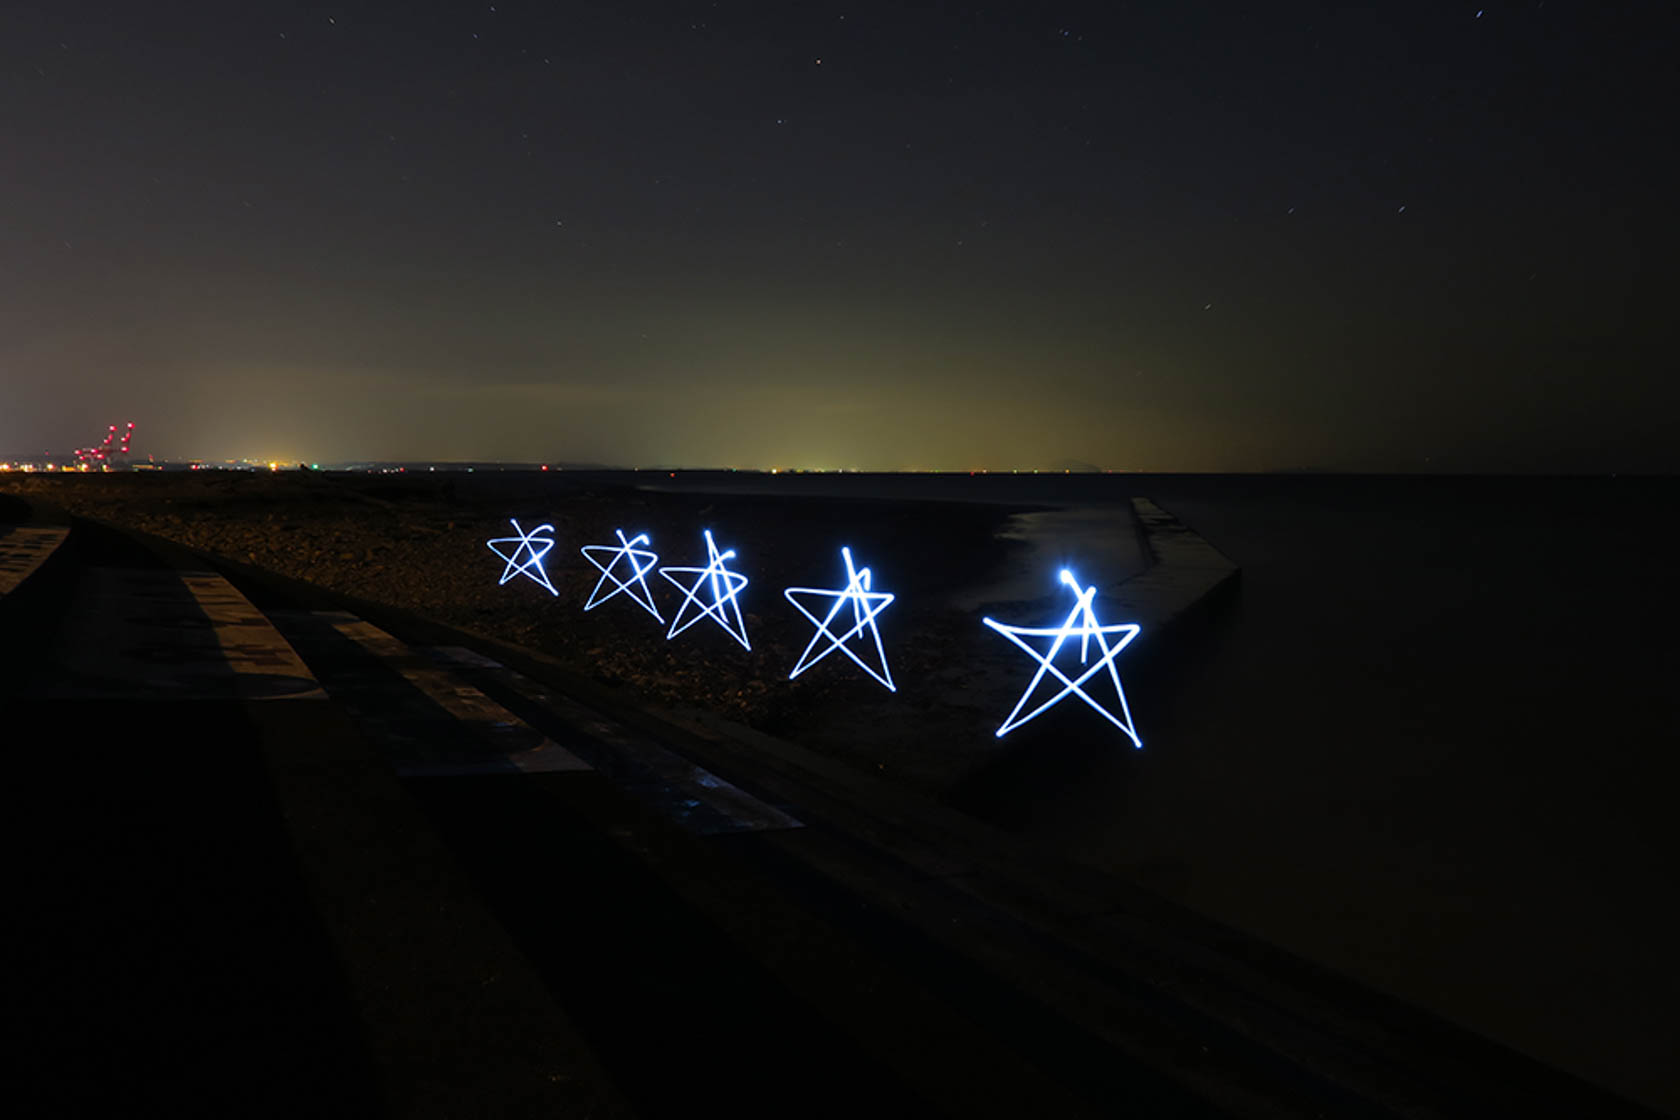 Stars made of light painting shot on the PowerShot G3 X